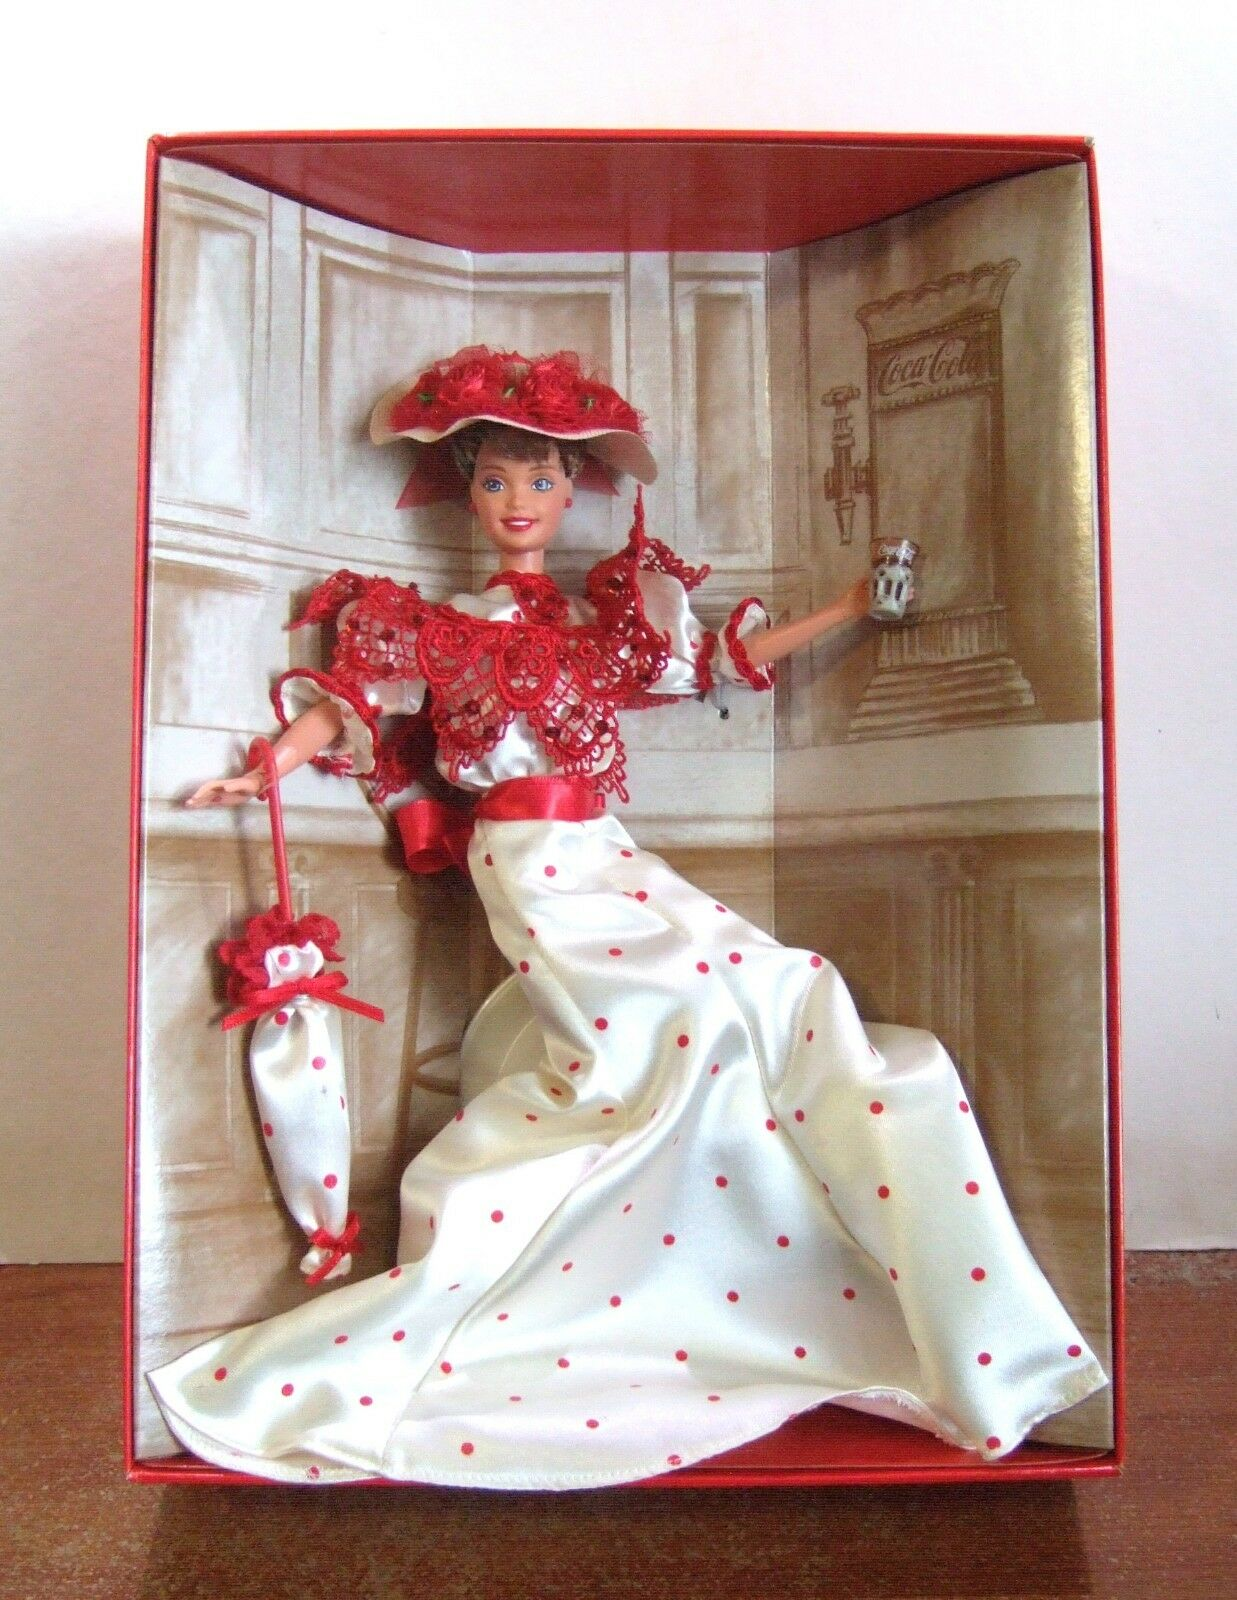 1996 Soda Fountain Sweetheart Coca Cola Barbie mit Absender Box NRFB (Z185)